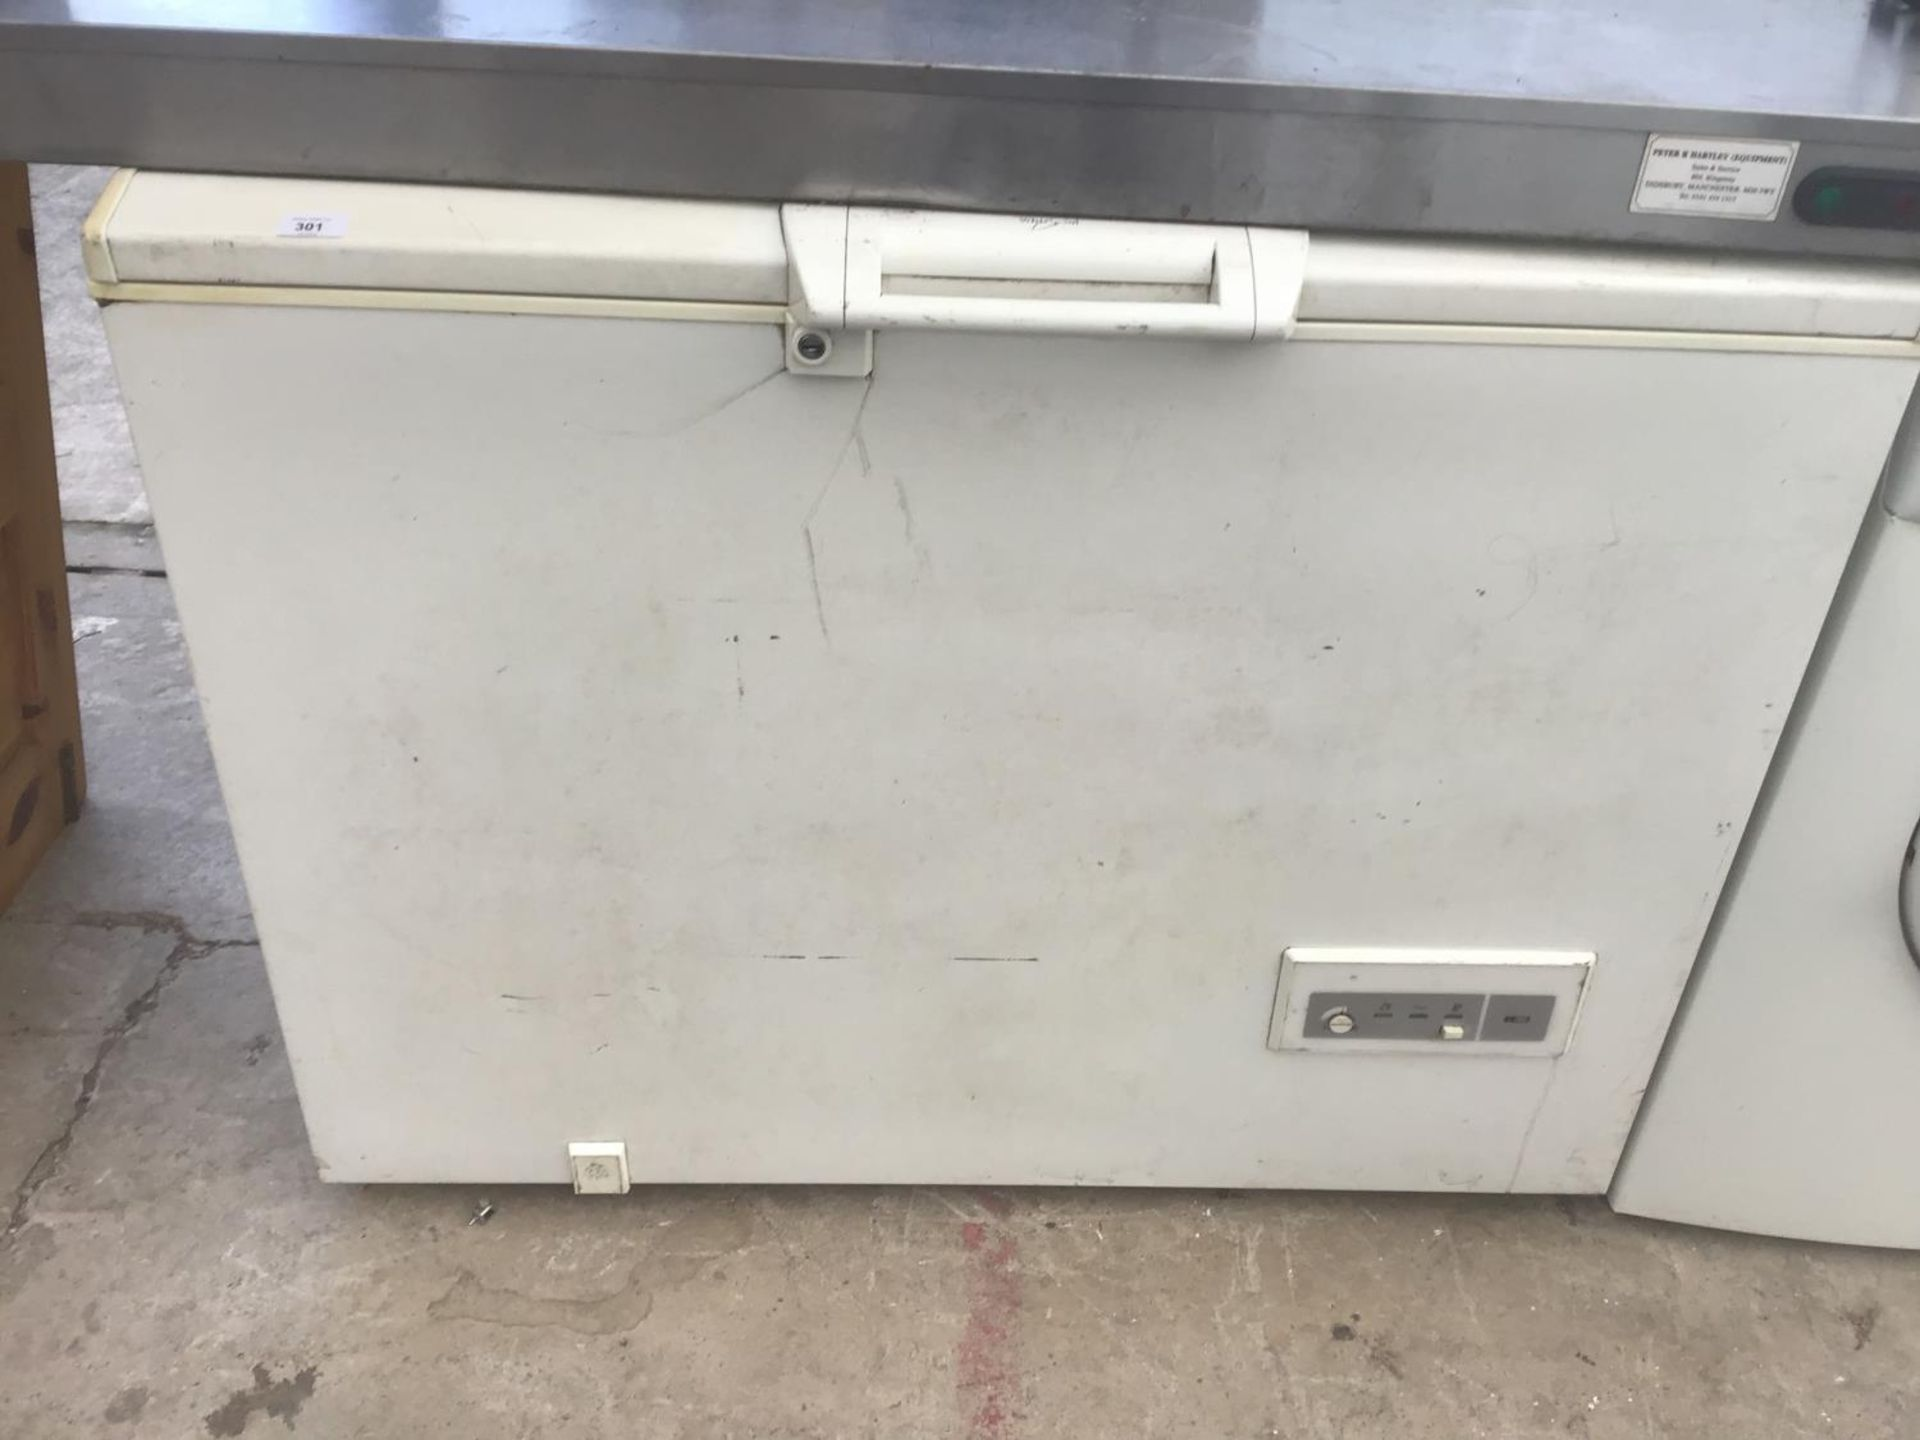 Lot 301 - A WHIRLPOOL CHEST FREEZER IN WORKING ORDER